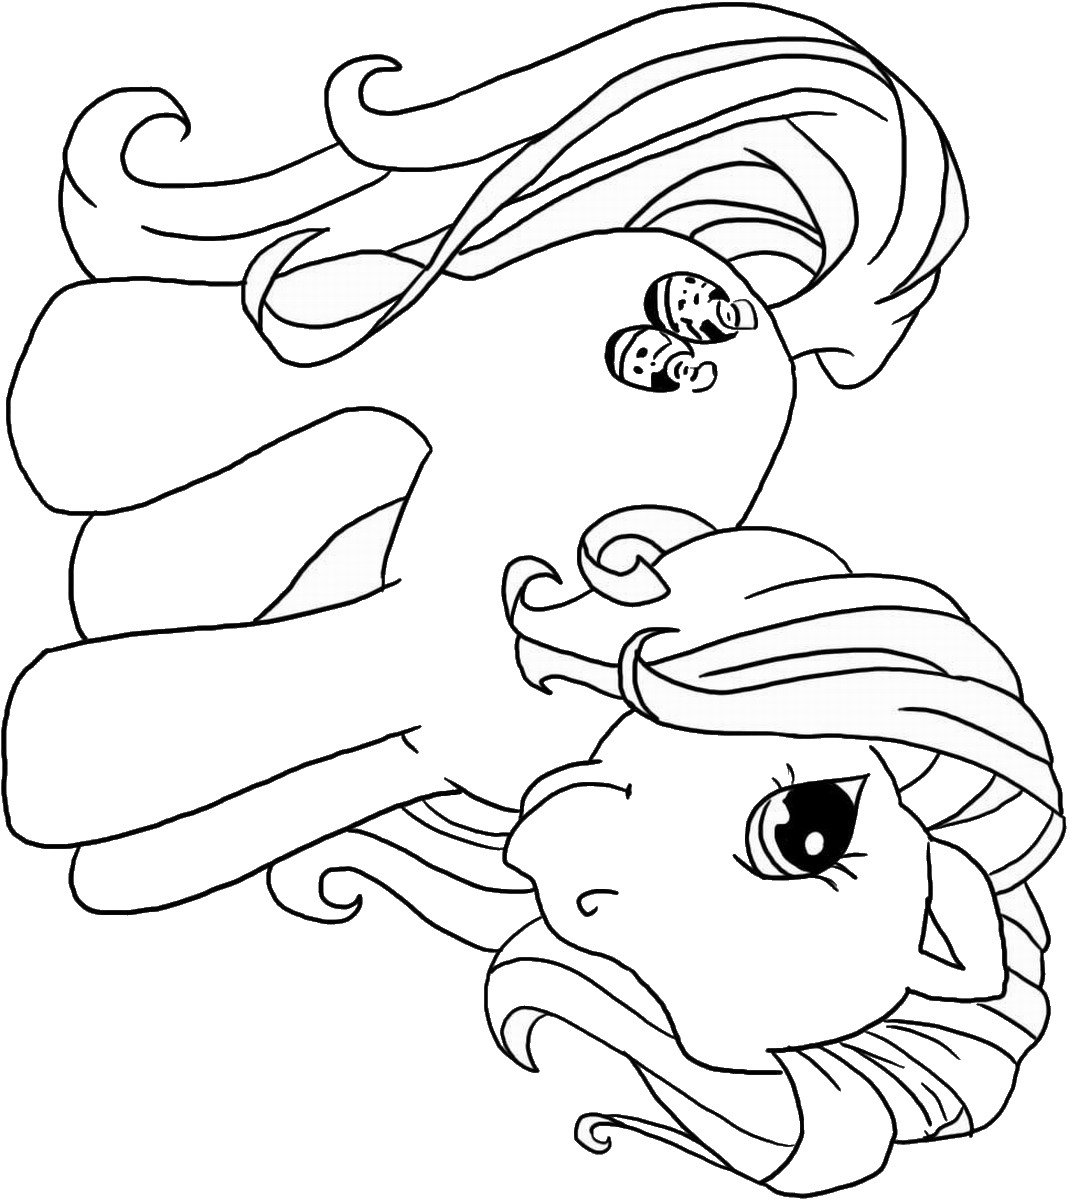 mlp coloring my little pony fluttershy coloring pages minister coloring coloring mlp 1 1